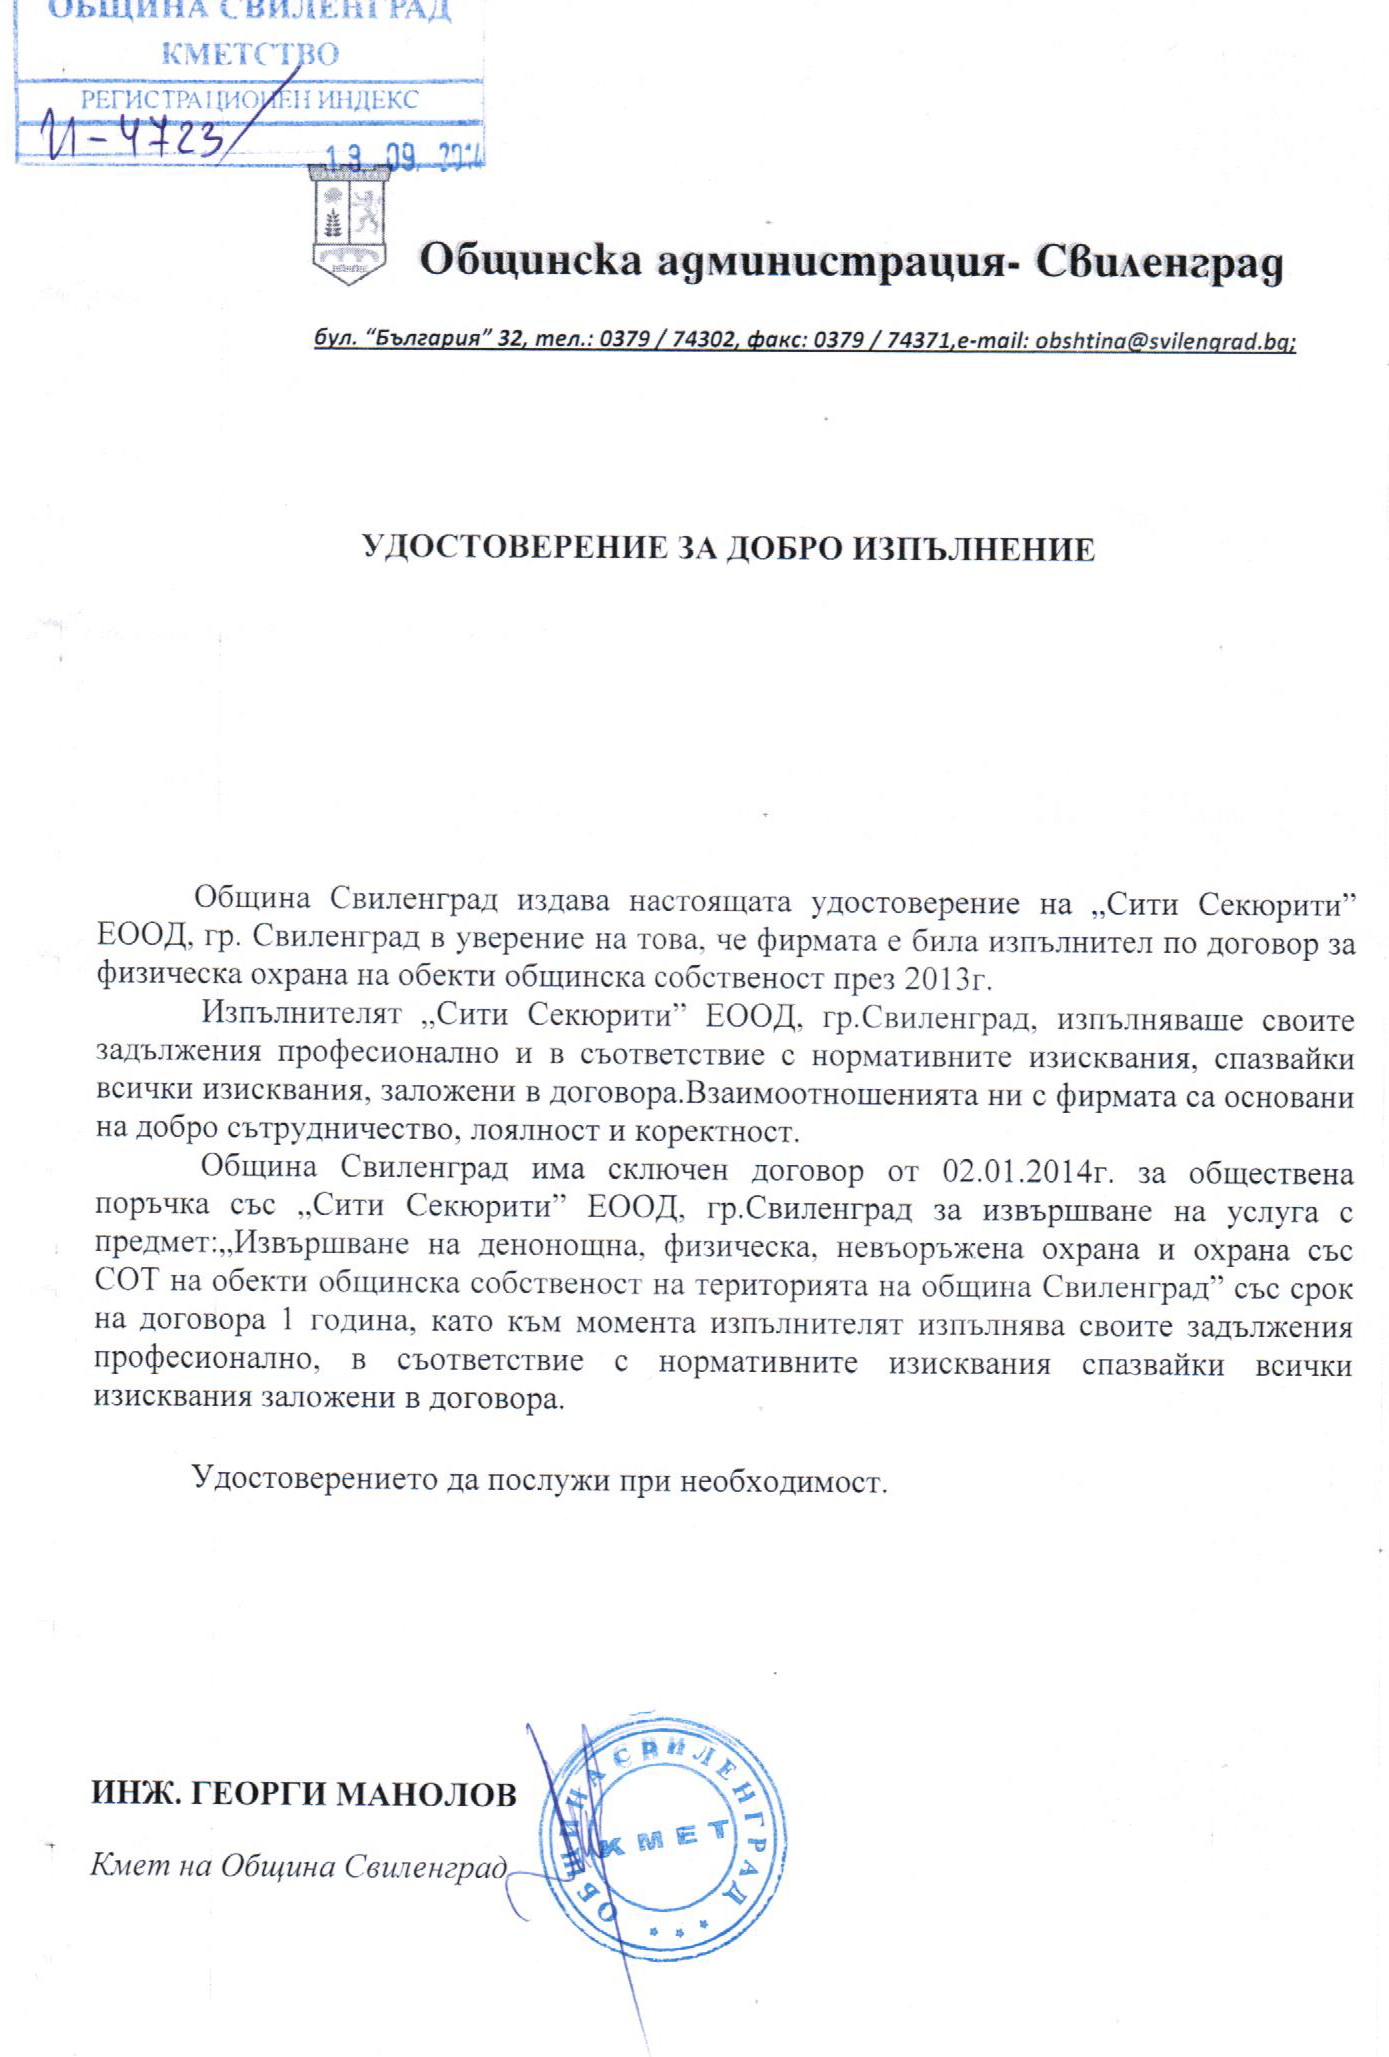 reference letter from the municipal administration svilengrad - Security Guard Reference Letter